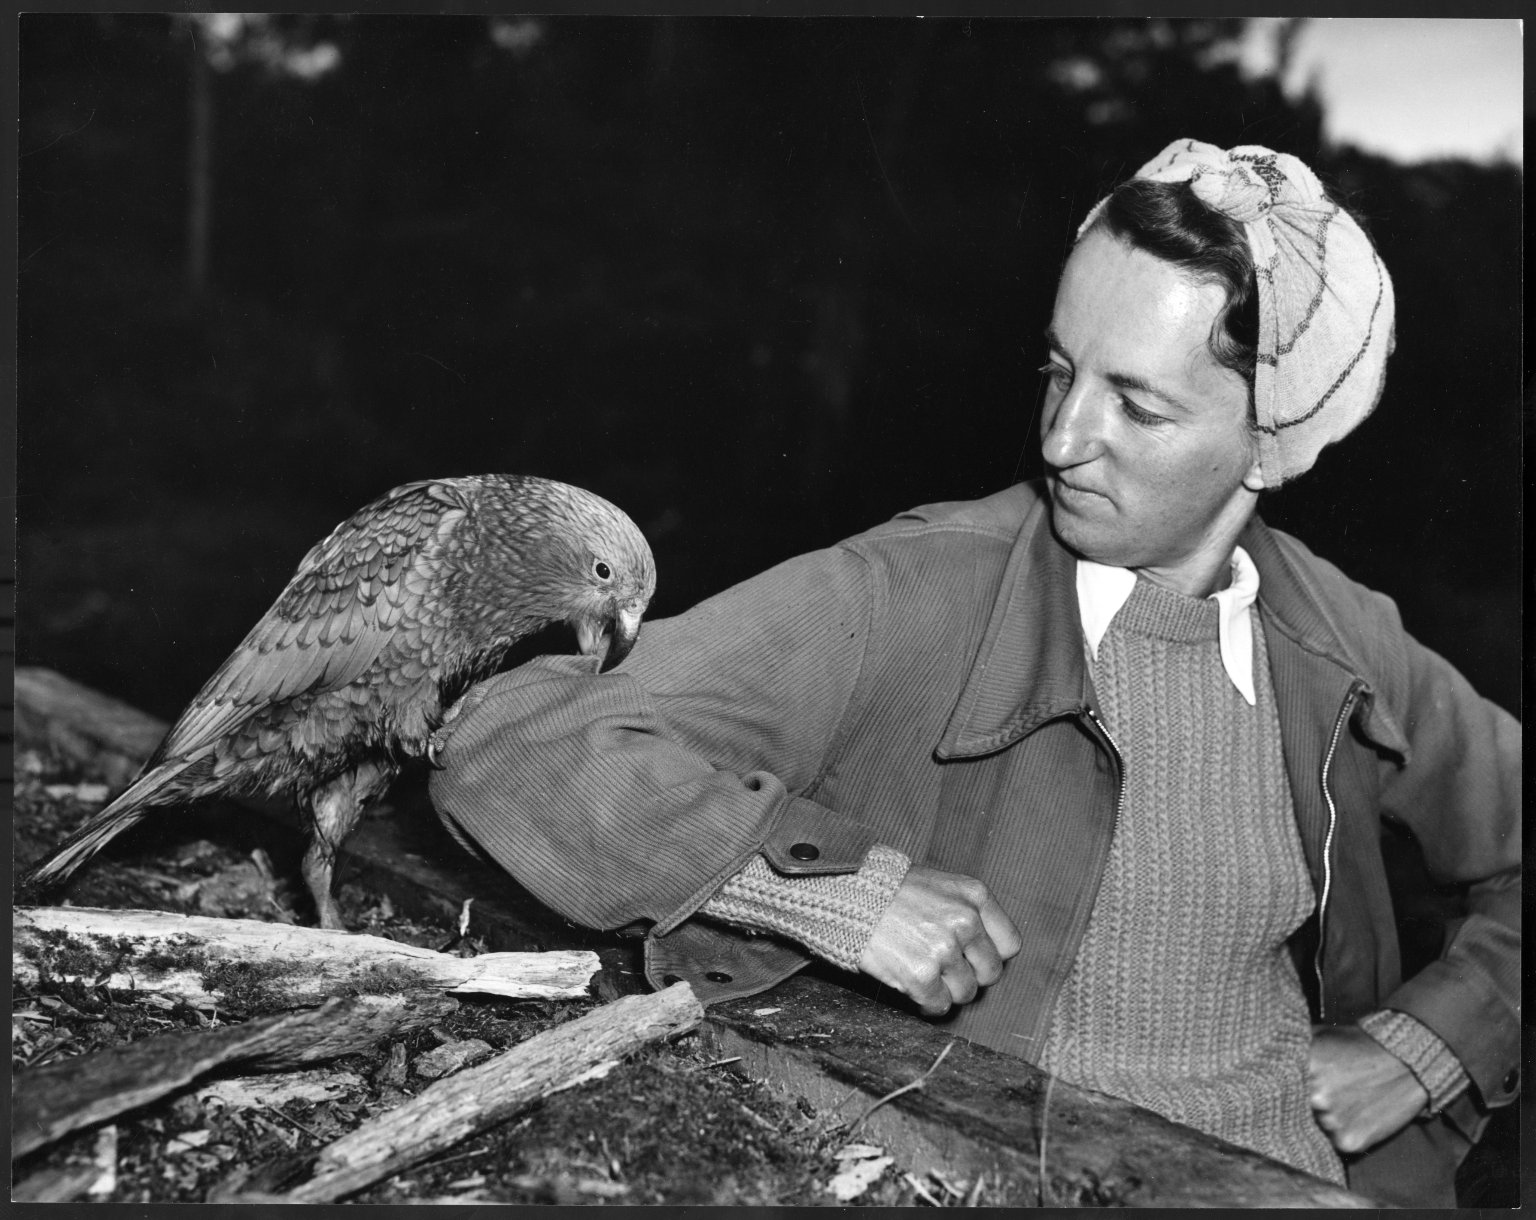 Jean E. Bigwood with Kea